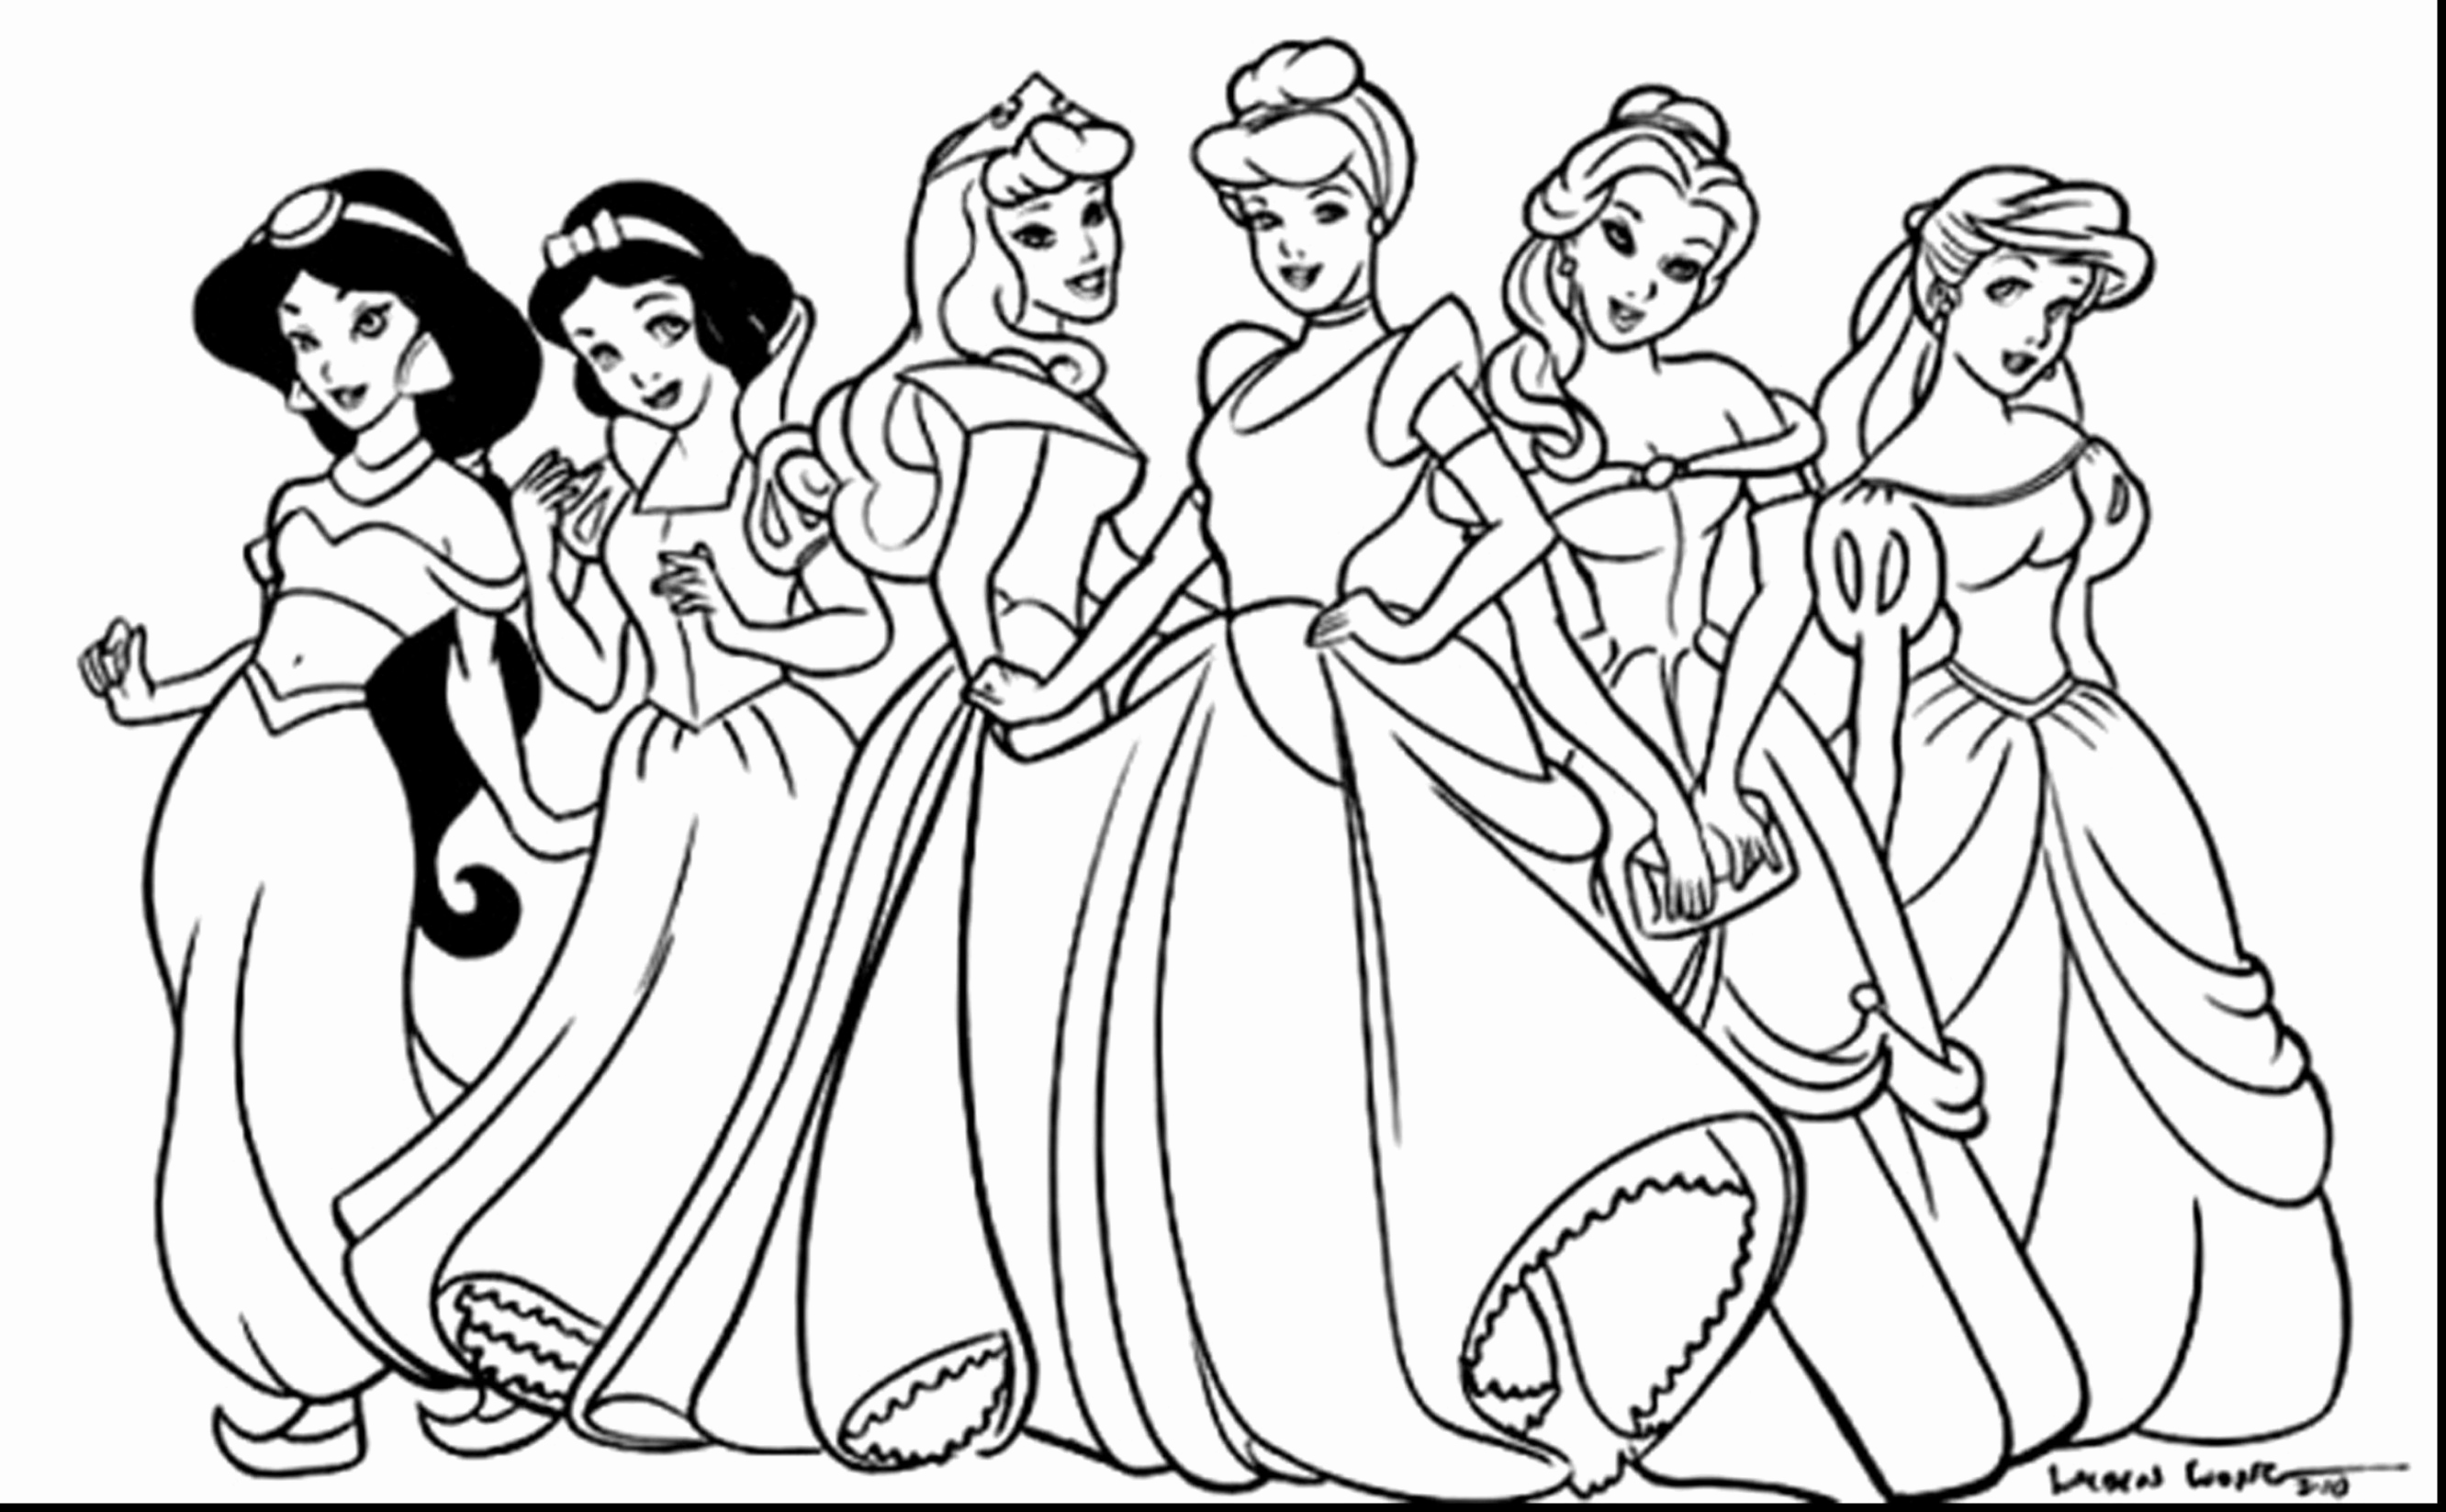 Barbie Deutsch Ganzer Film Best Barbie Merliah Coloring Pages Girls Coloring Pages Barbie Mermaid